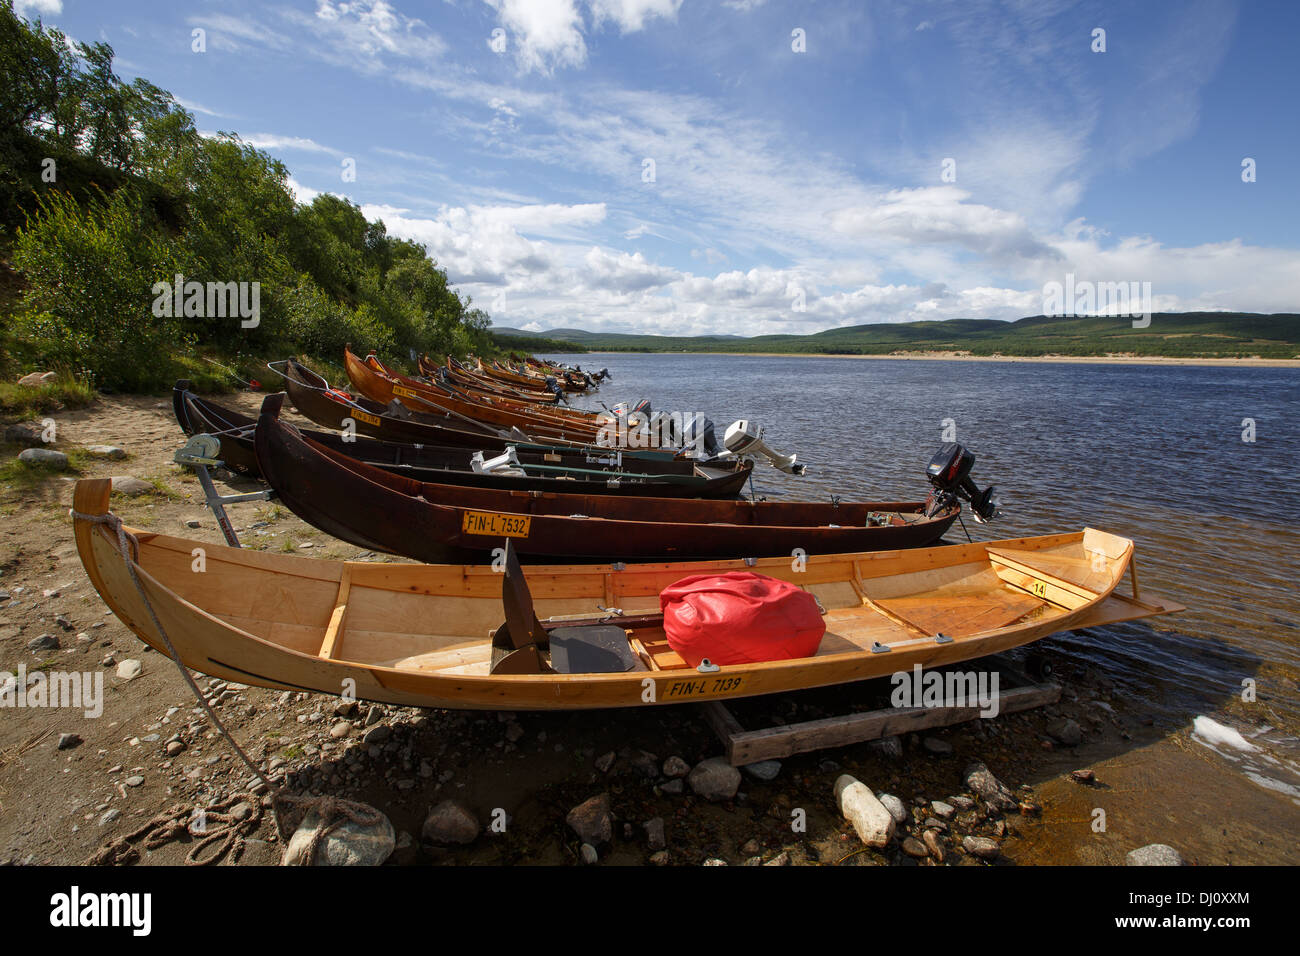 Wooden Boats With Outboard Motors For Salmon Fishing On